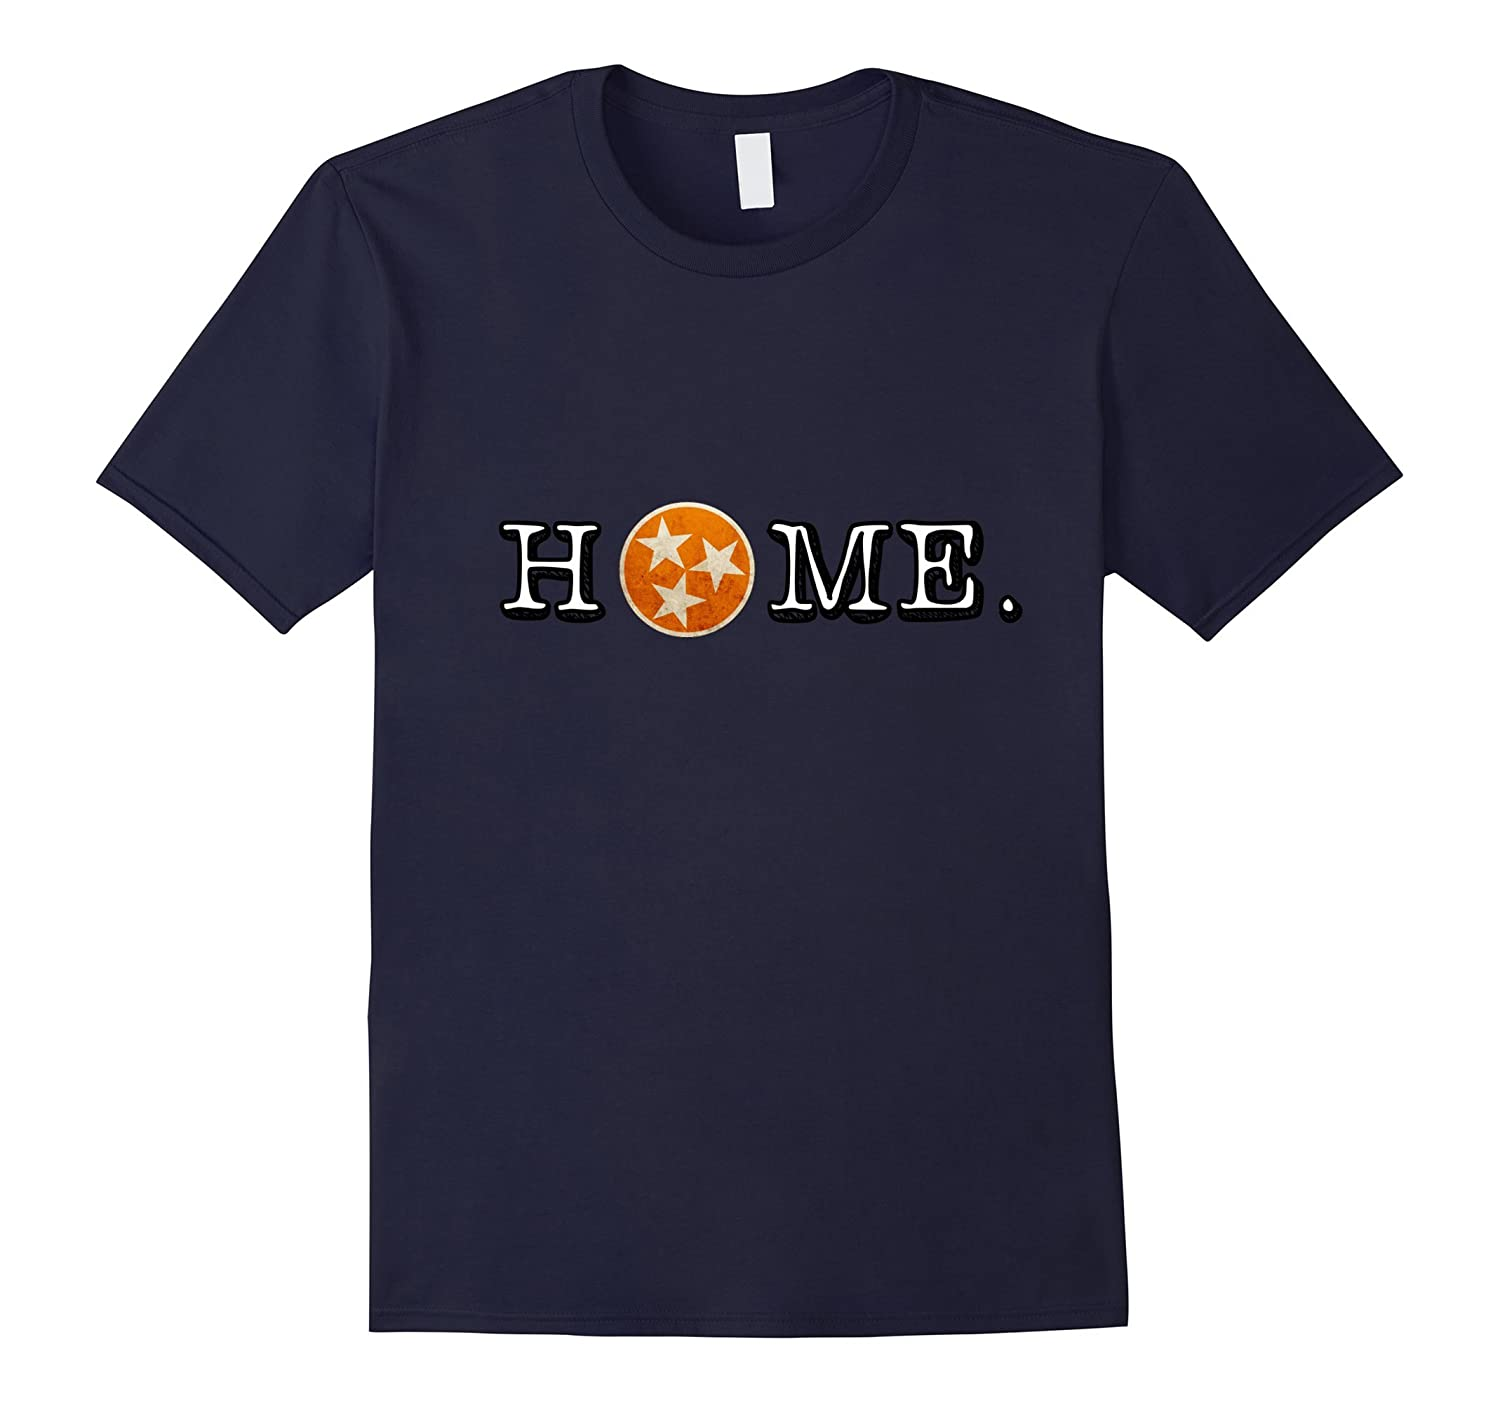 Tennessee State Flag Orange and White Home Tee Shirt Vintage-Art